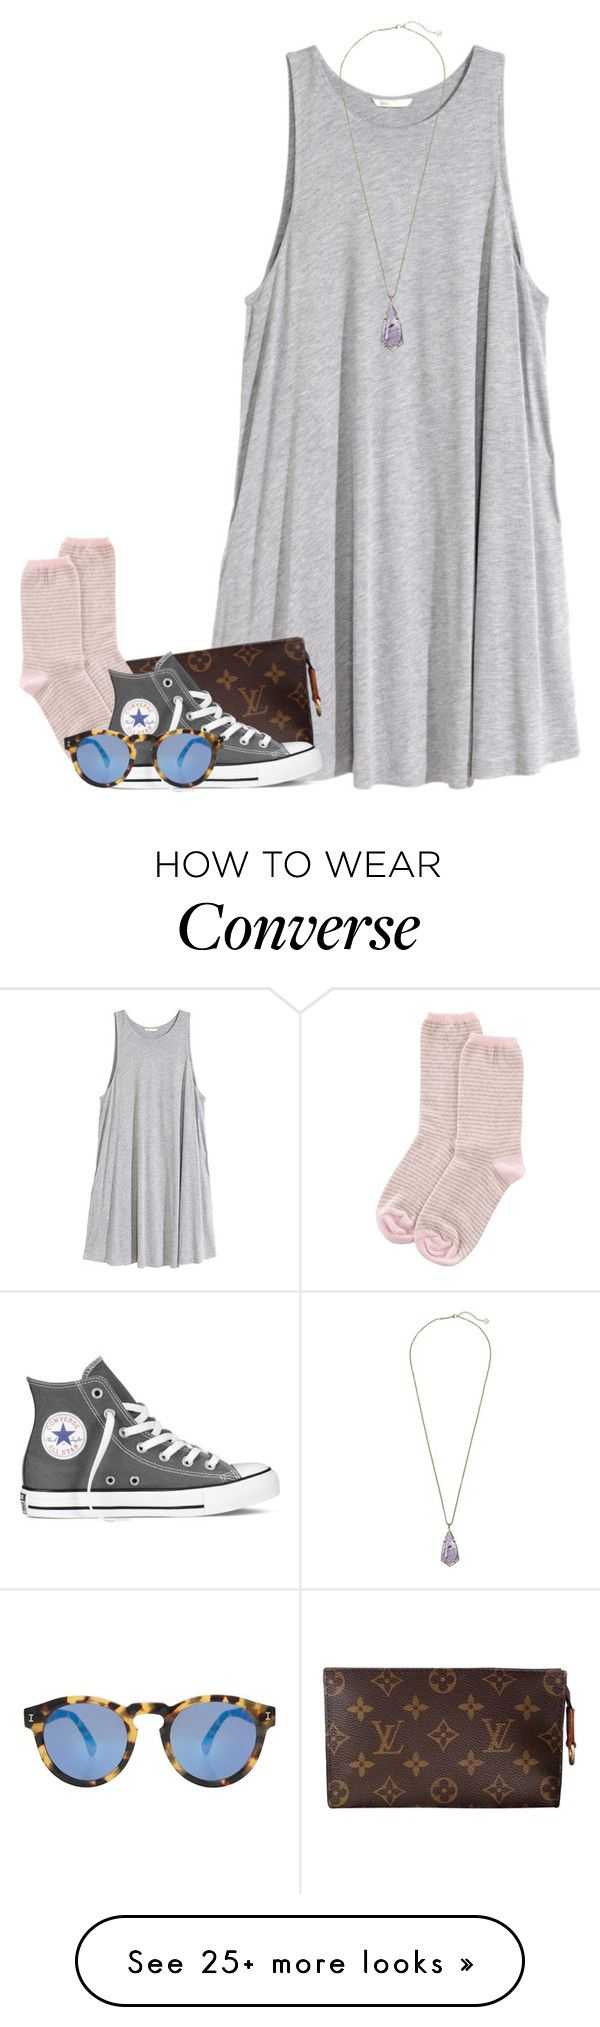 """day 2"" by conleighh on Polyvore featuring H&M, Louis Vuitton, Johnstons of Elgin, Converse, Illesteva, Kendra Scott and itssummertimemh"